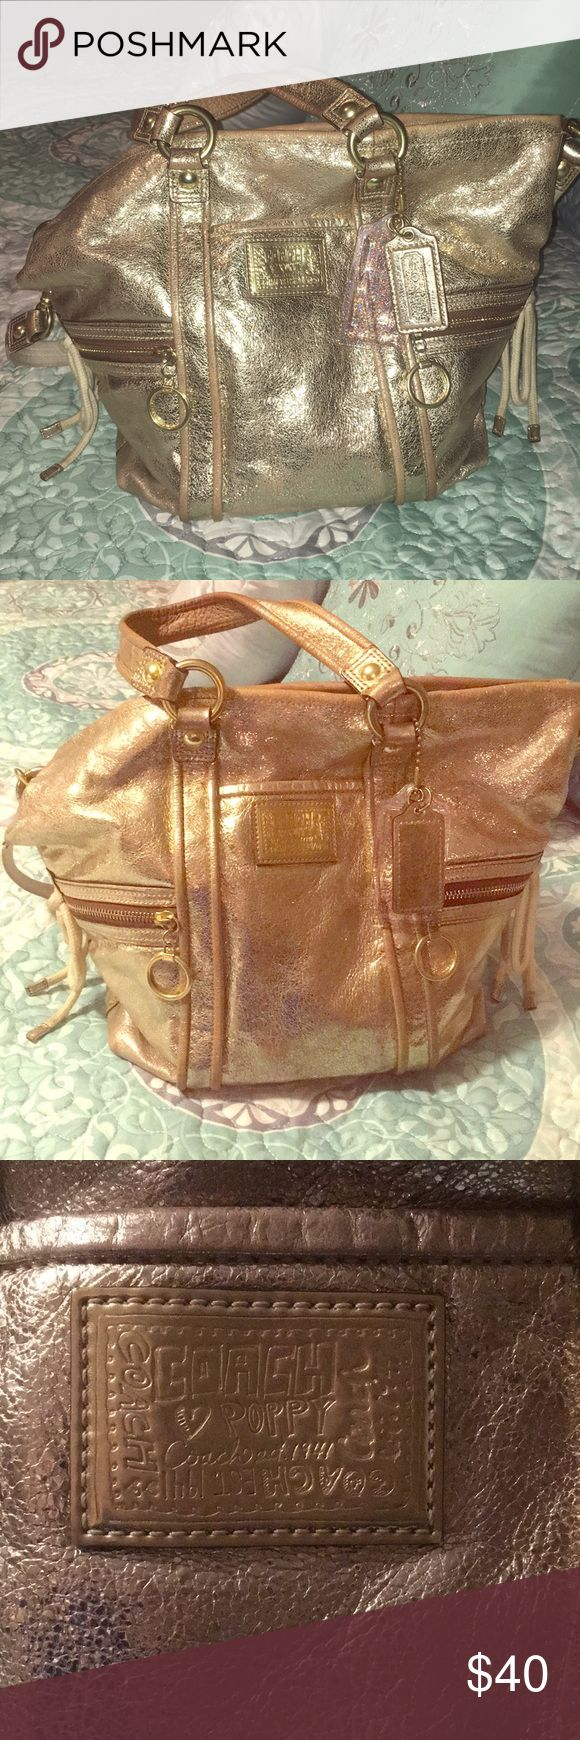 Gold Coach Poppy Purse {see description} Gold coach poppy purse - strap and inside needs to be cleaned. Please see photos for accurate condition Coach Bags Shoulder Bags